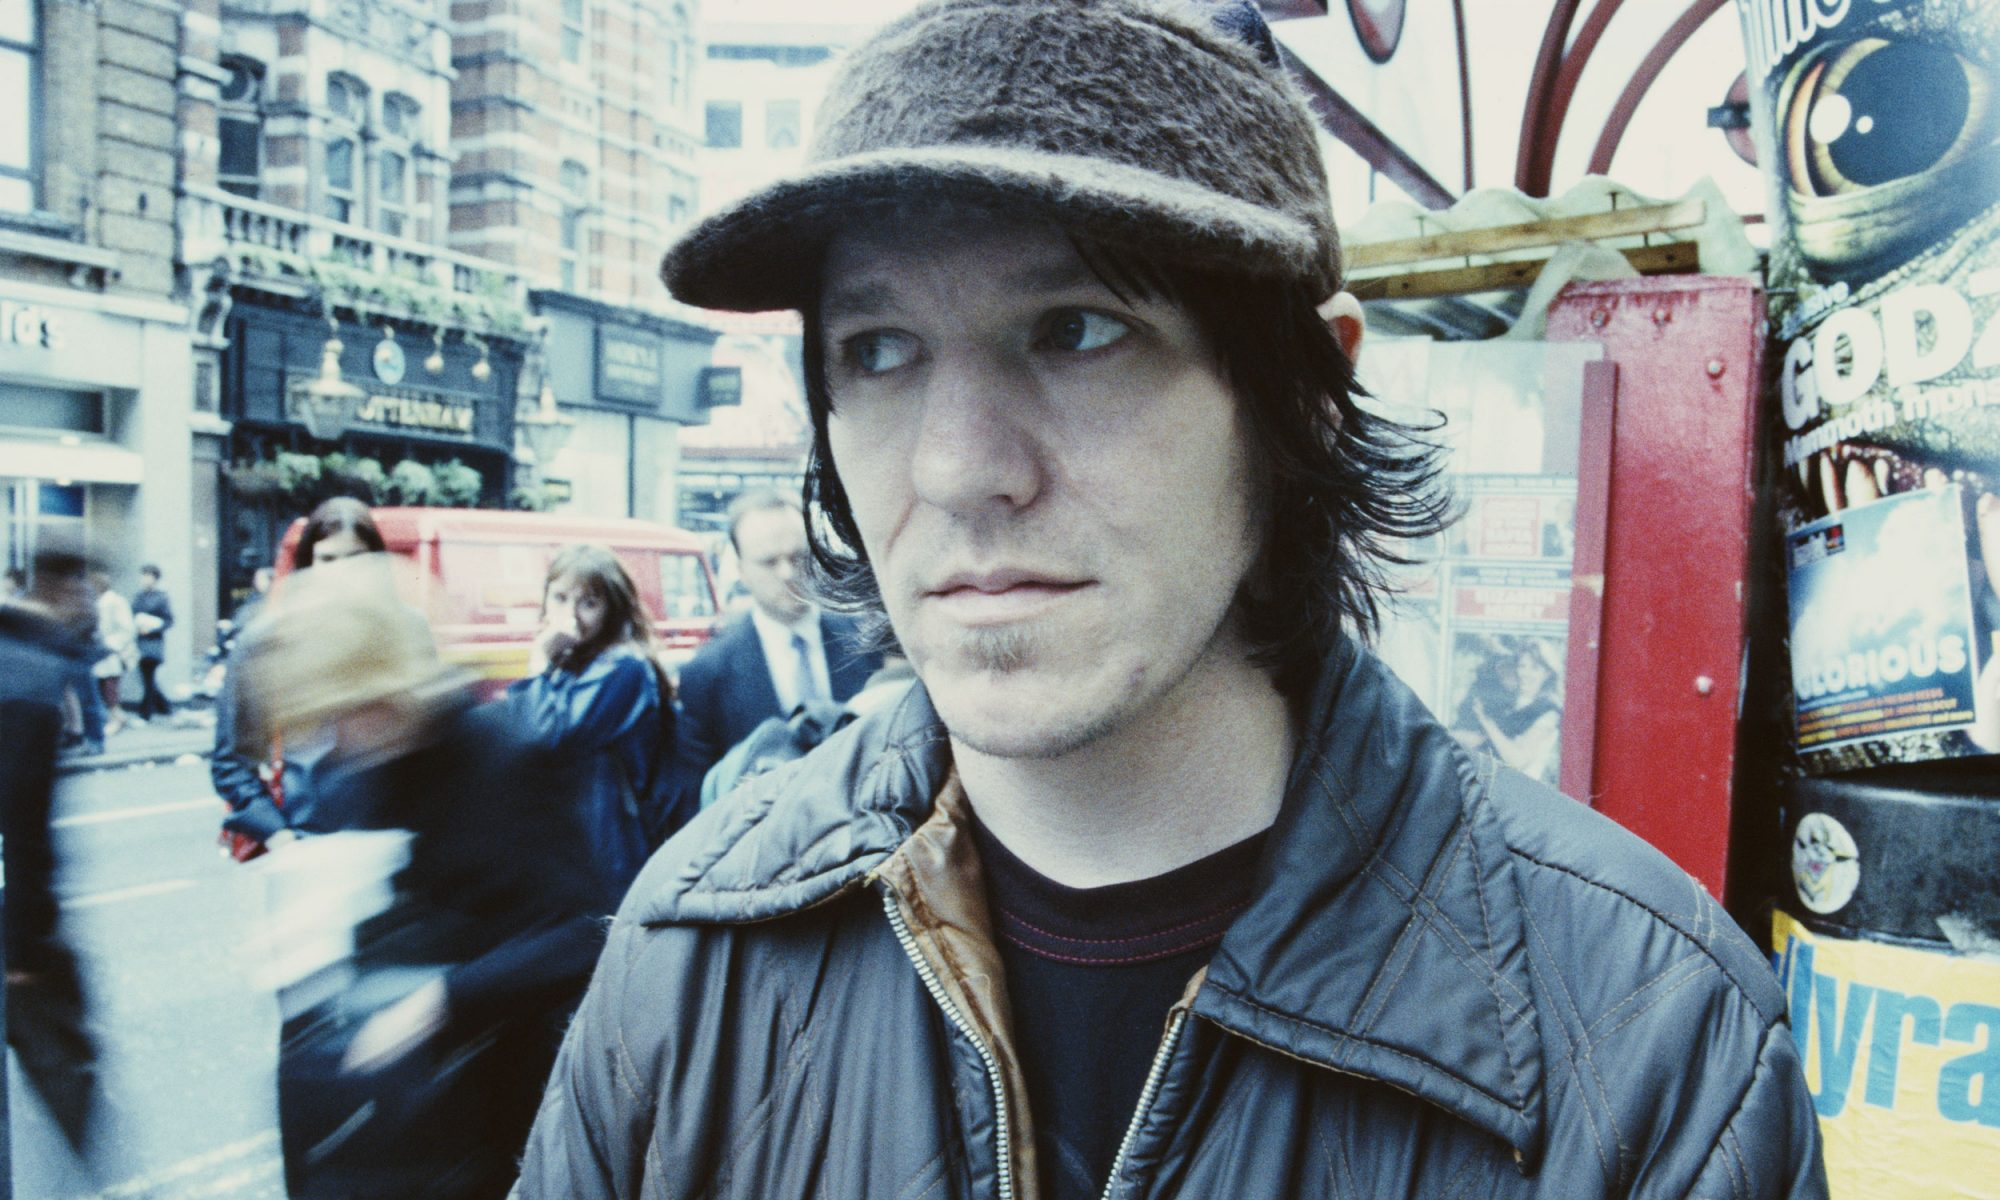 EC: An Elliott Smith-Themed Bar Is Serving Brunch, Unfortunately